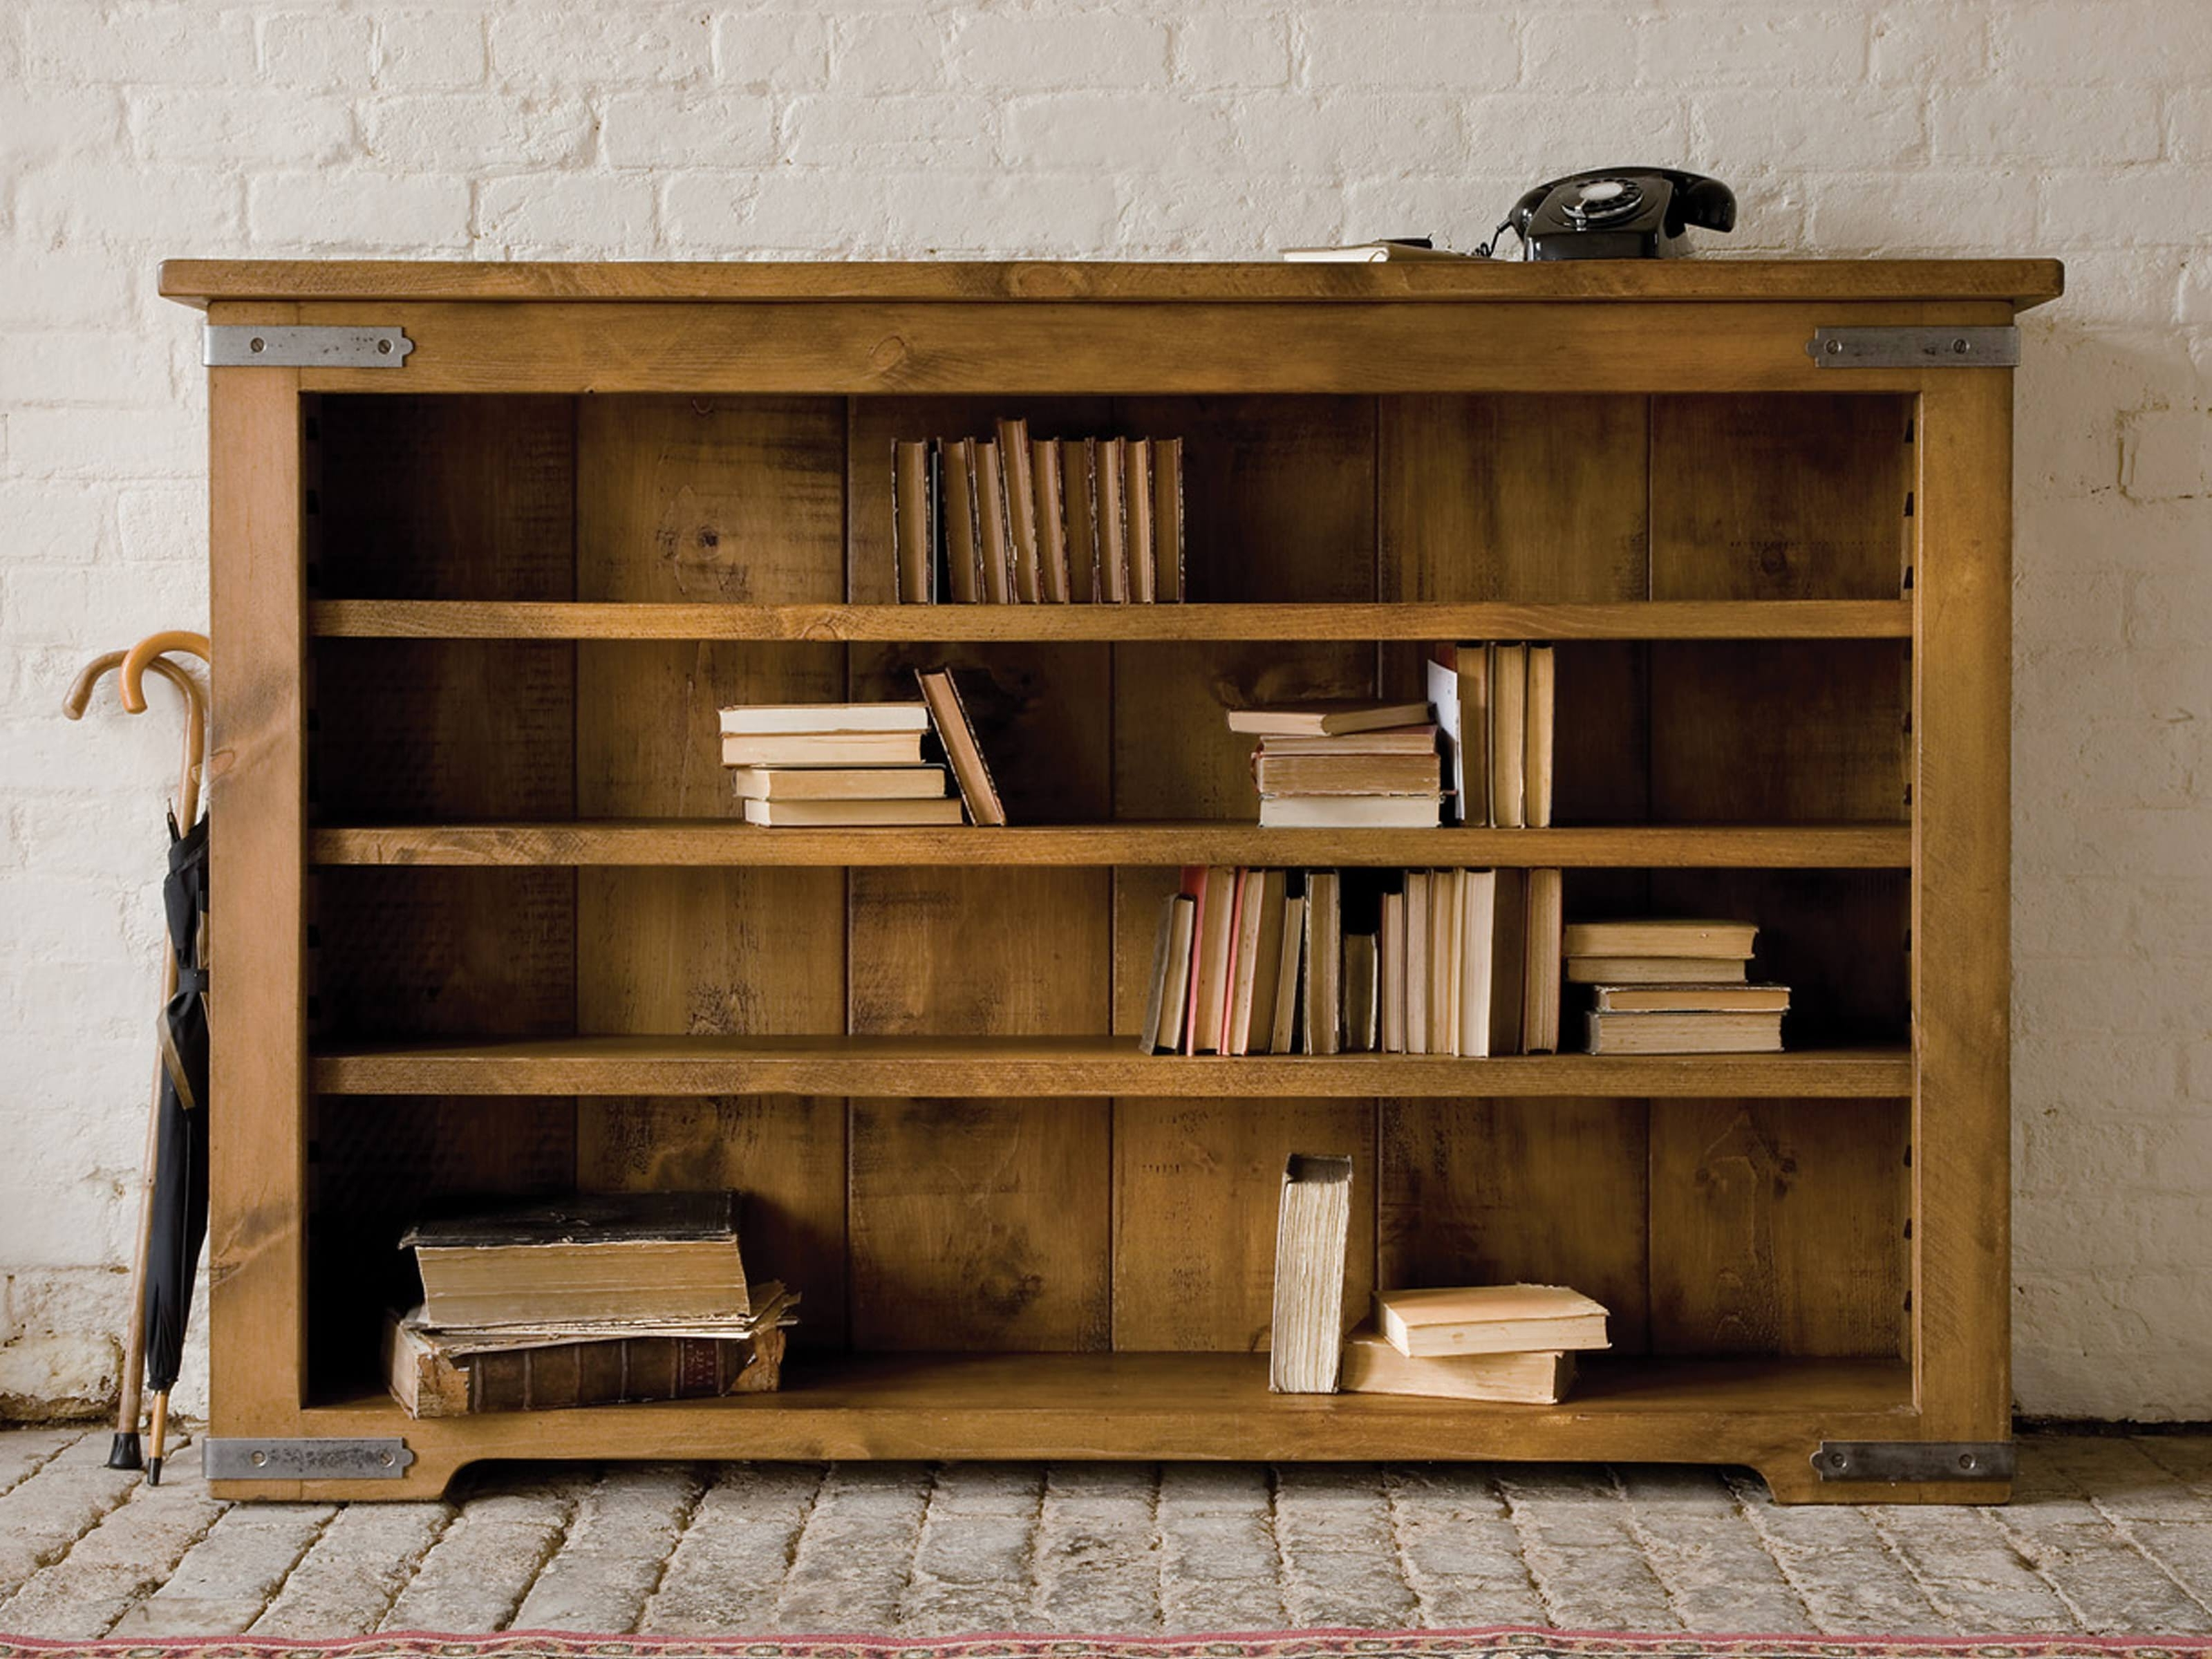 Favorite Bookcases Ideas: Best Choice Bookcases Wood Ever Wood Bookcases Inside Pier One Bookcases (View 15 of 15)